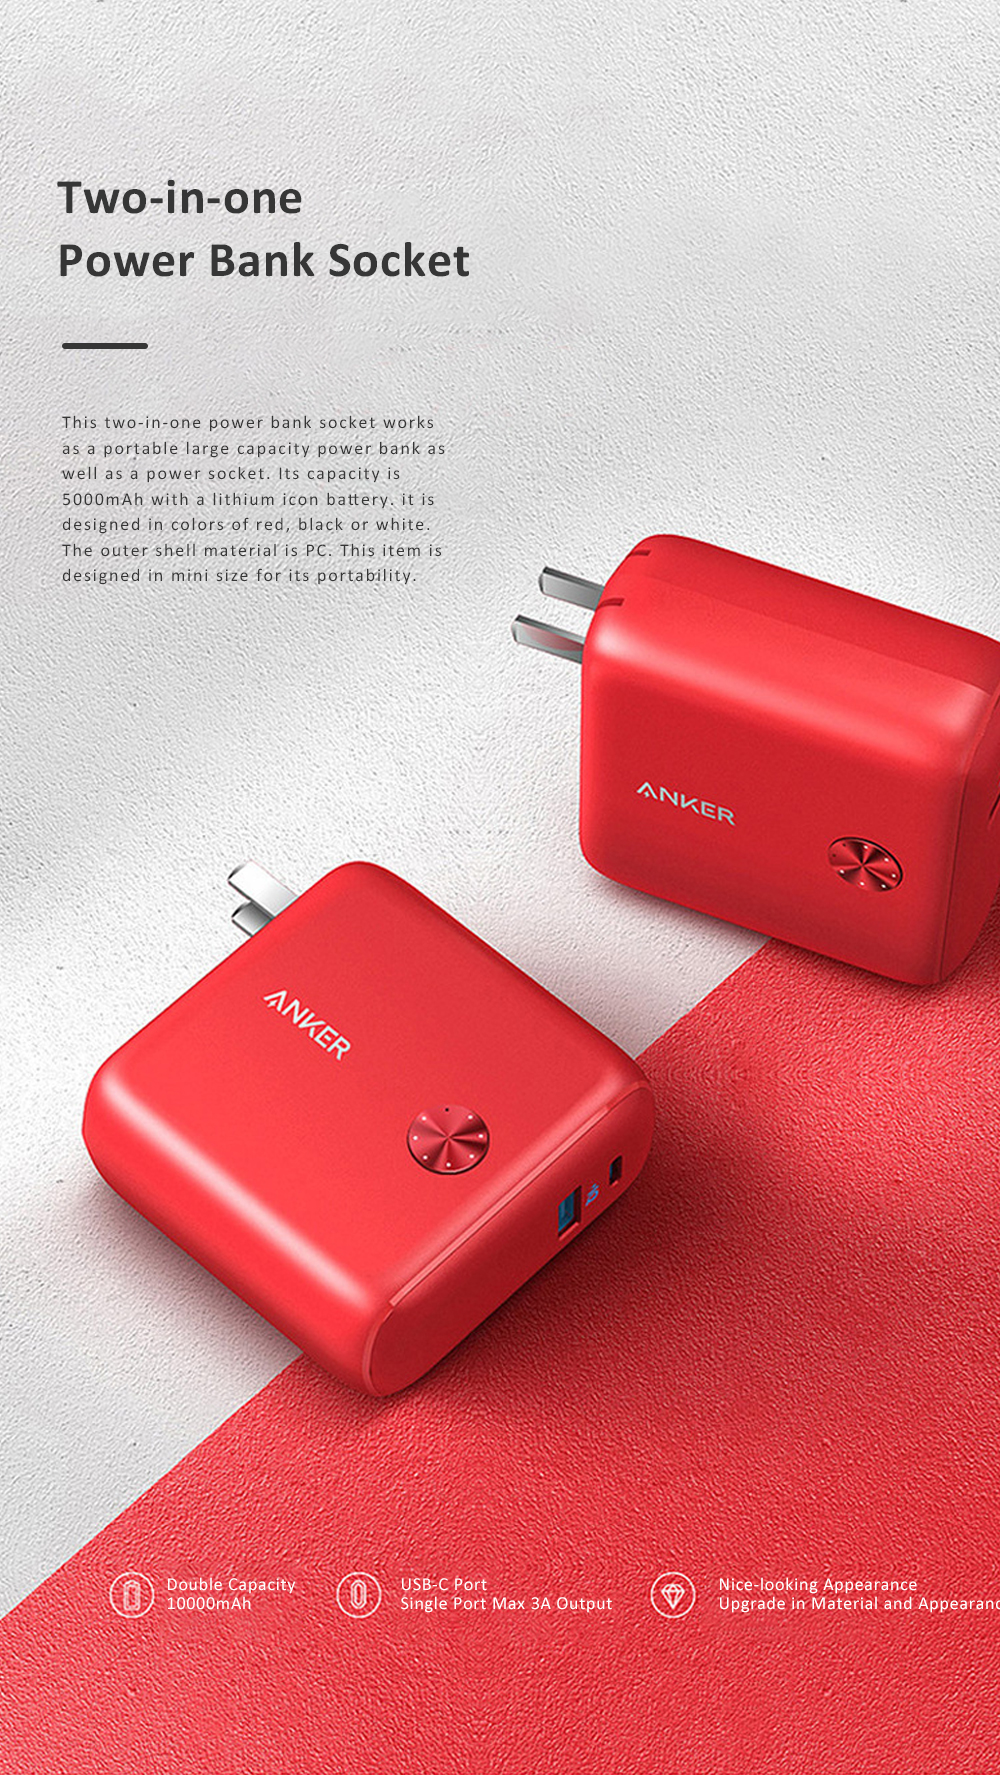 Anker 2 in 1 Power Bank Station Socket for Outdoors Travelling Quick Charge Portable Recharge Switch Power Socket 0